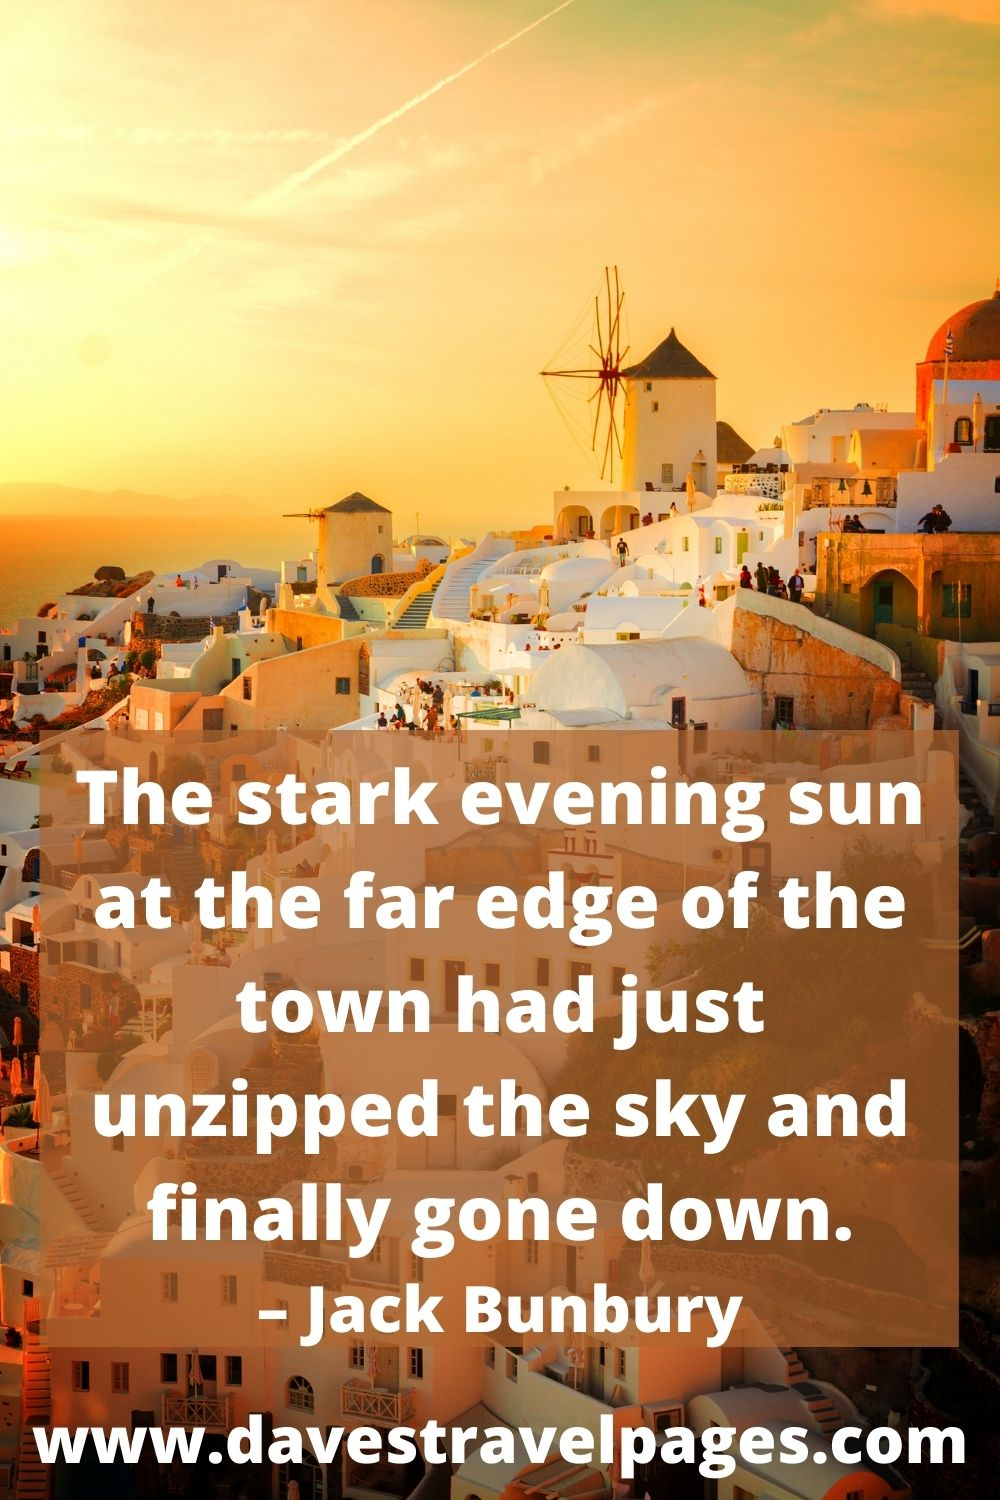 The stark evening sun at the far edge of the town had just unzipped the sky and finally gone down. – Jack Bunbury